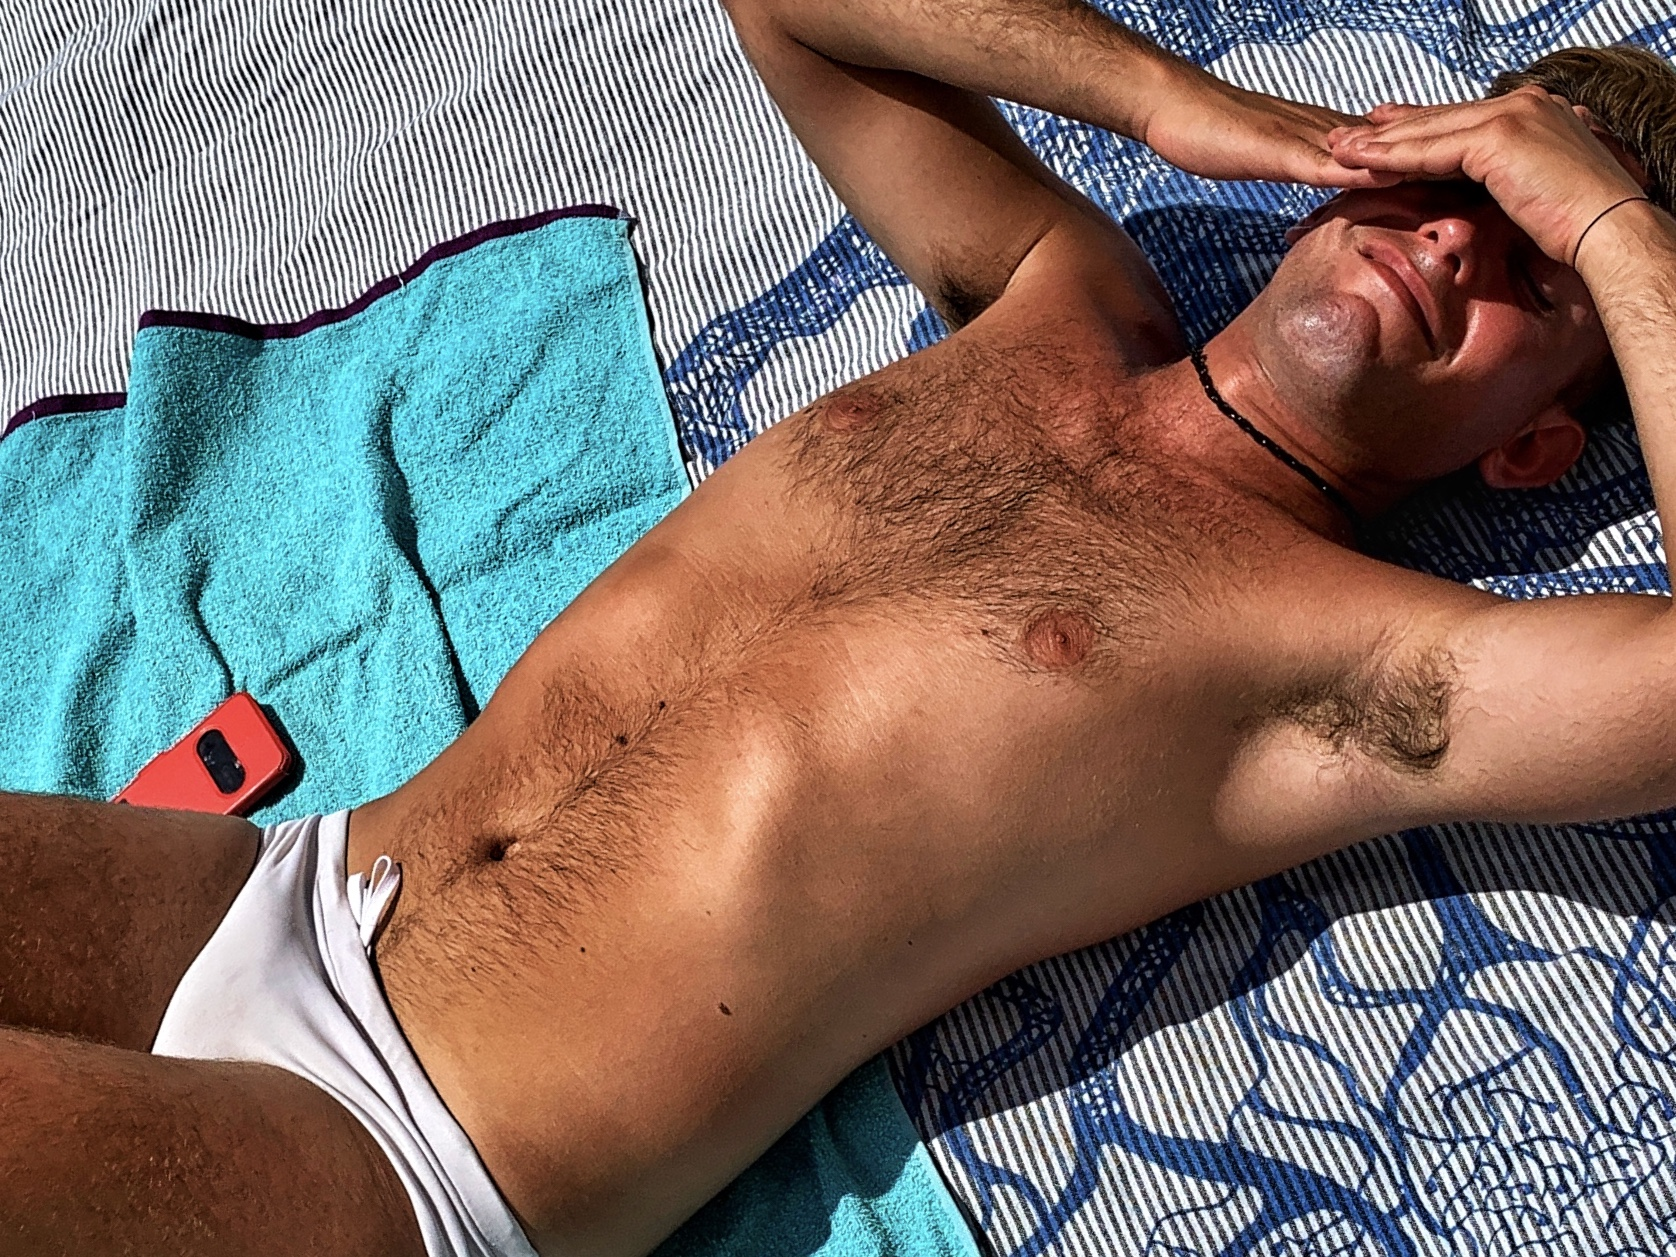 Gay Puglia - the Big Gay Podcast from Puglia. Serving up Puglia's finest food and destination recommendations. Hot Italian beaches, guys under the sun.